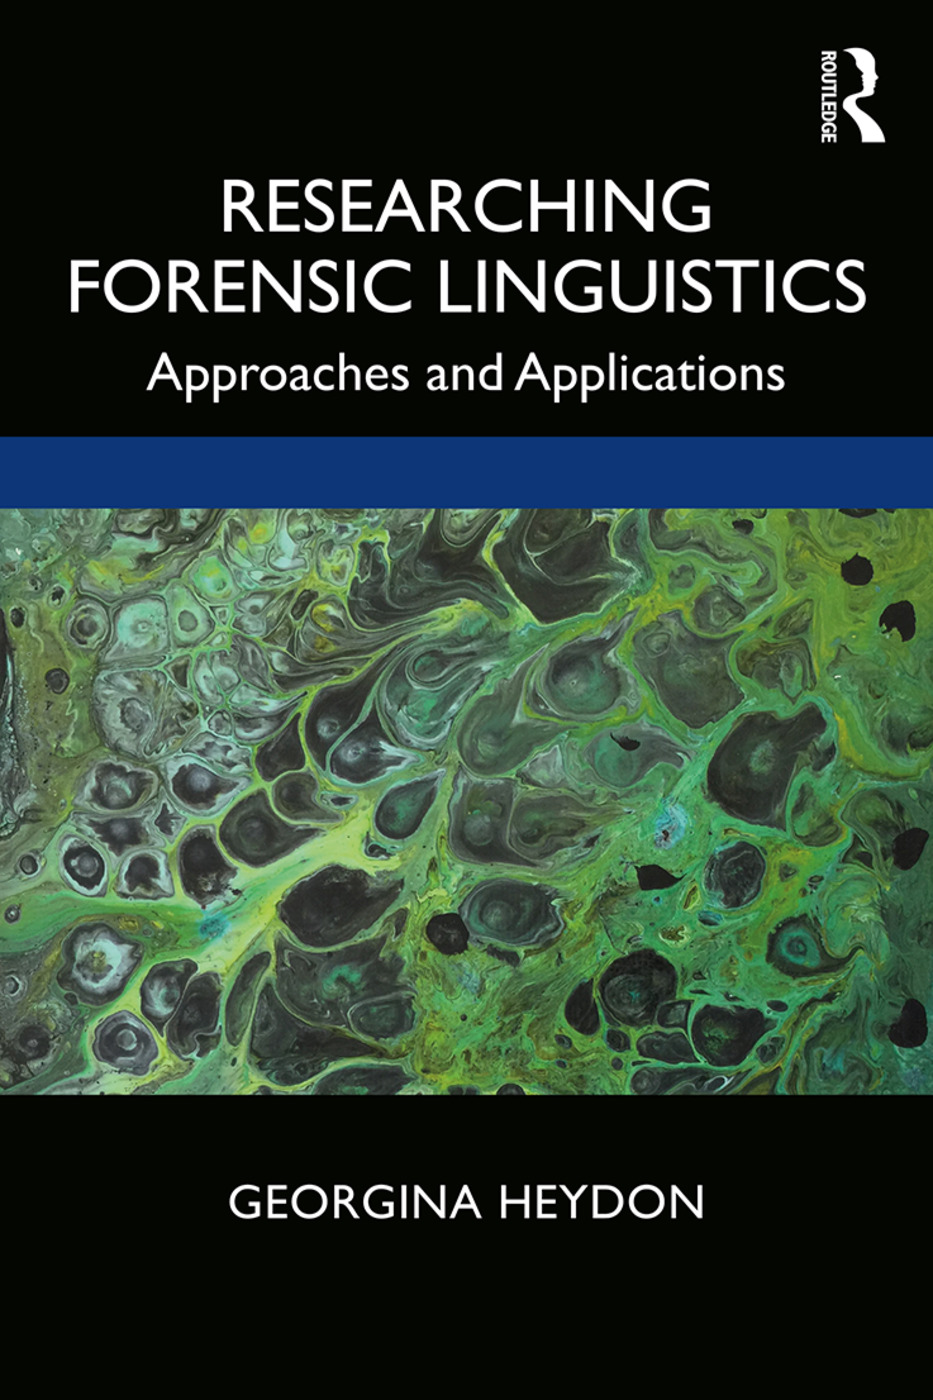 Researching Forensic Linguistics: Approaches and Applications book cover